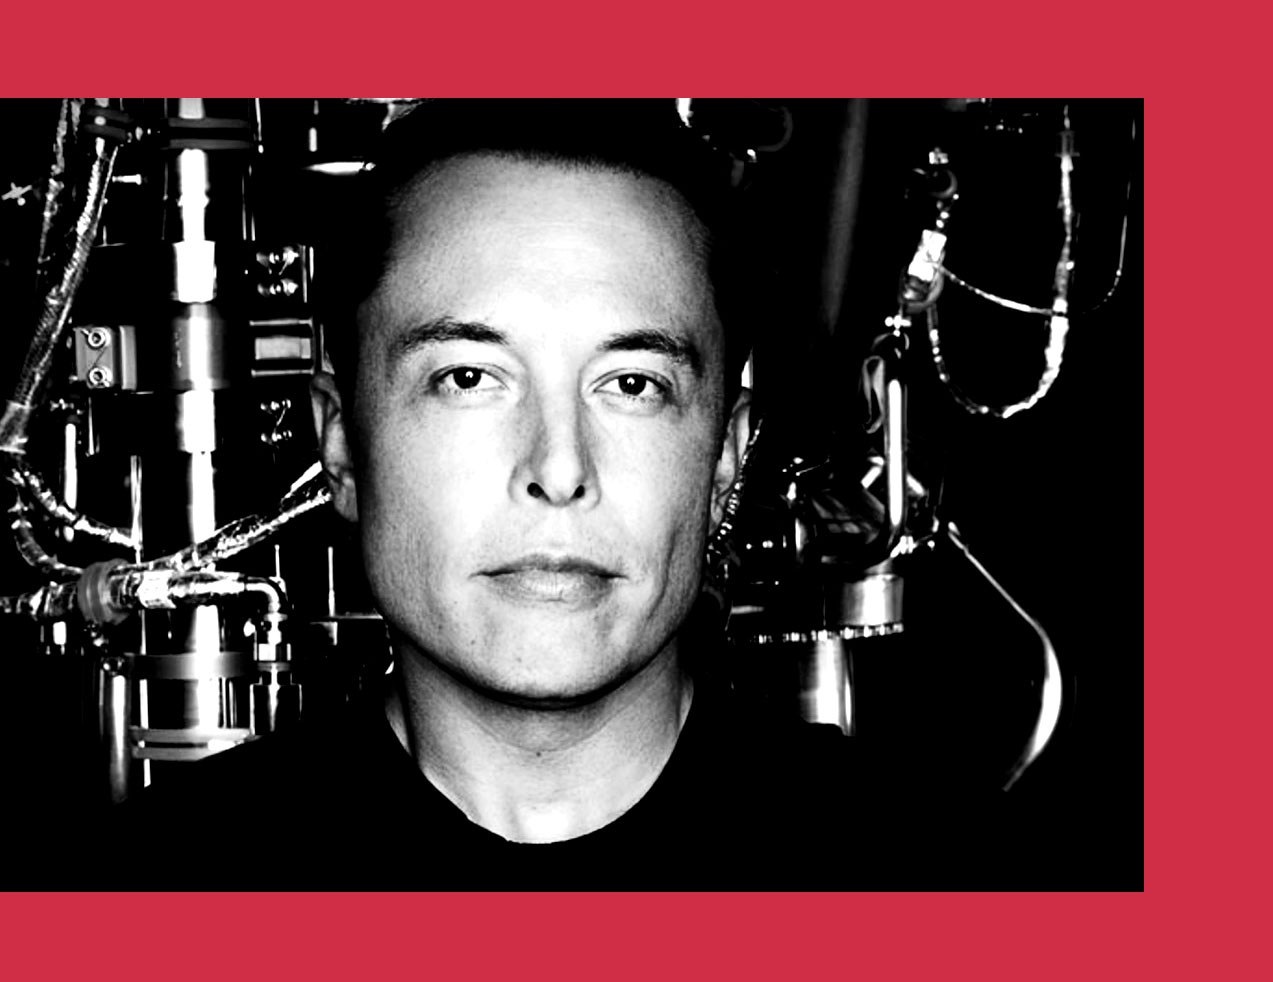 Elon Musk: one of my heroes